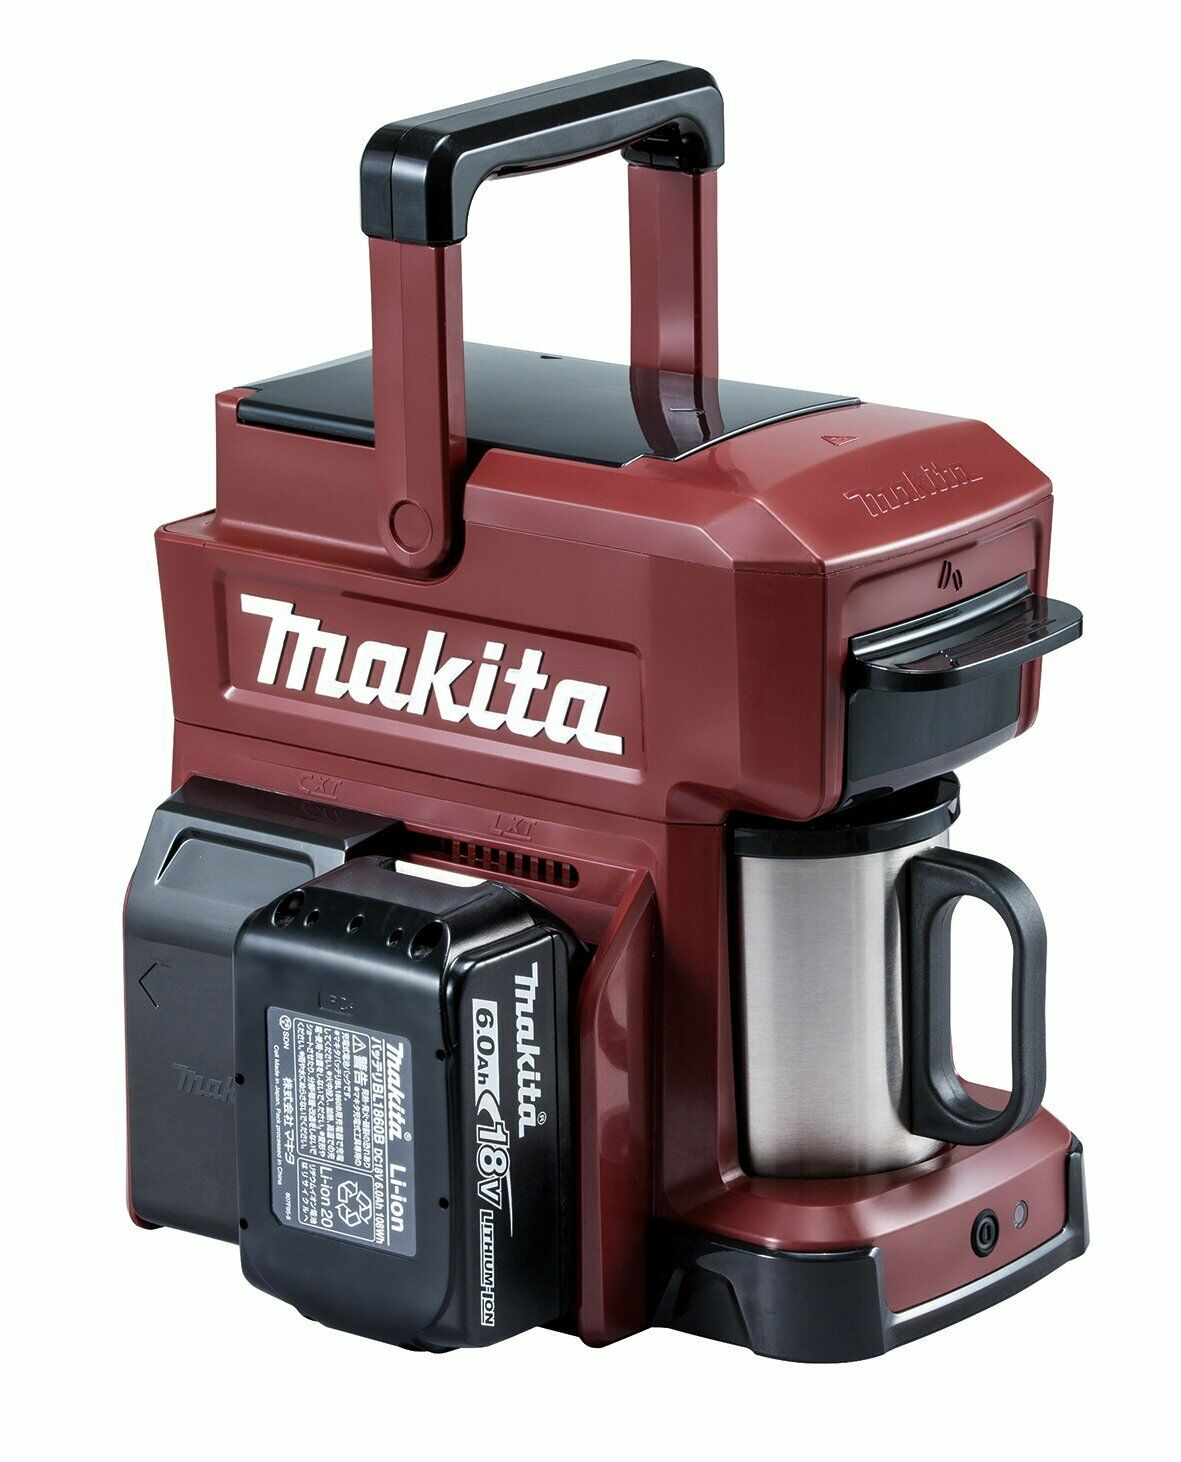 MAKITA Rechargeable Coffee Maker CM501DZAR Authentic RedJapan Domestic genuin